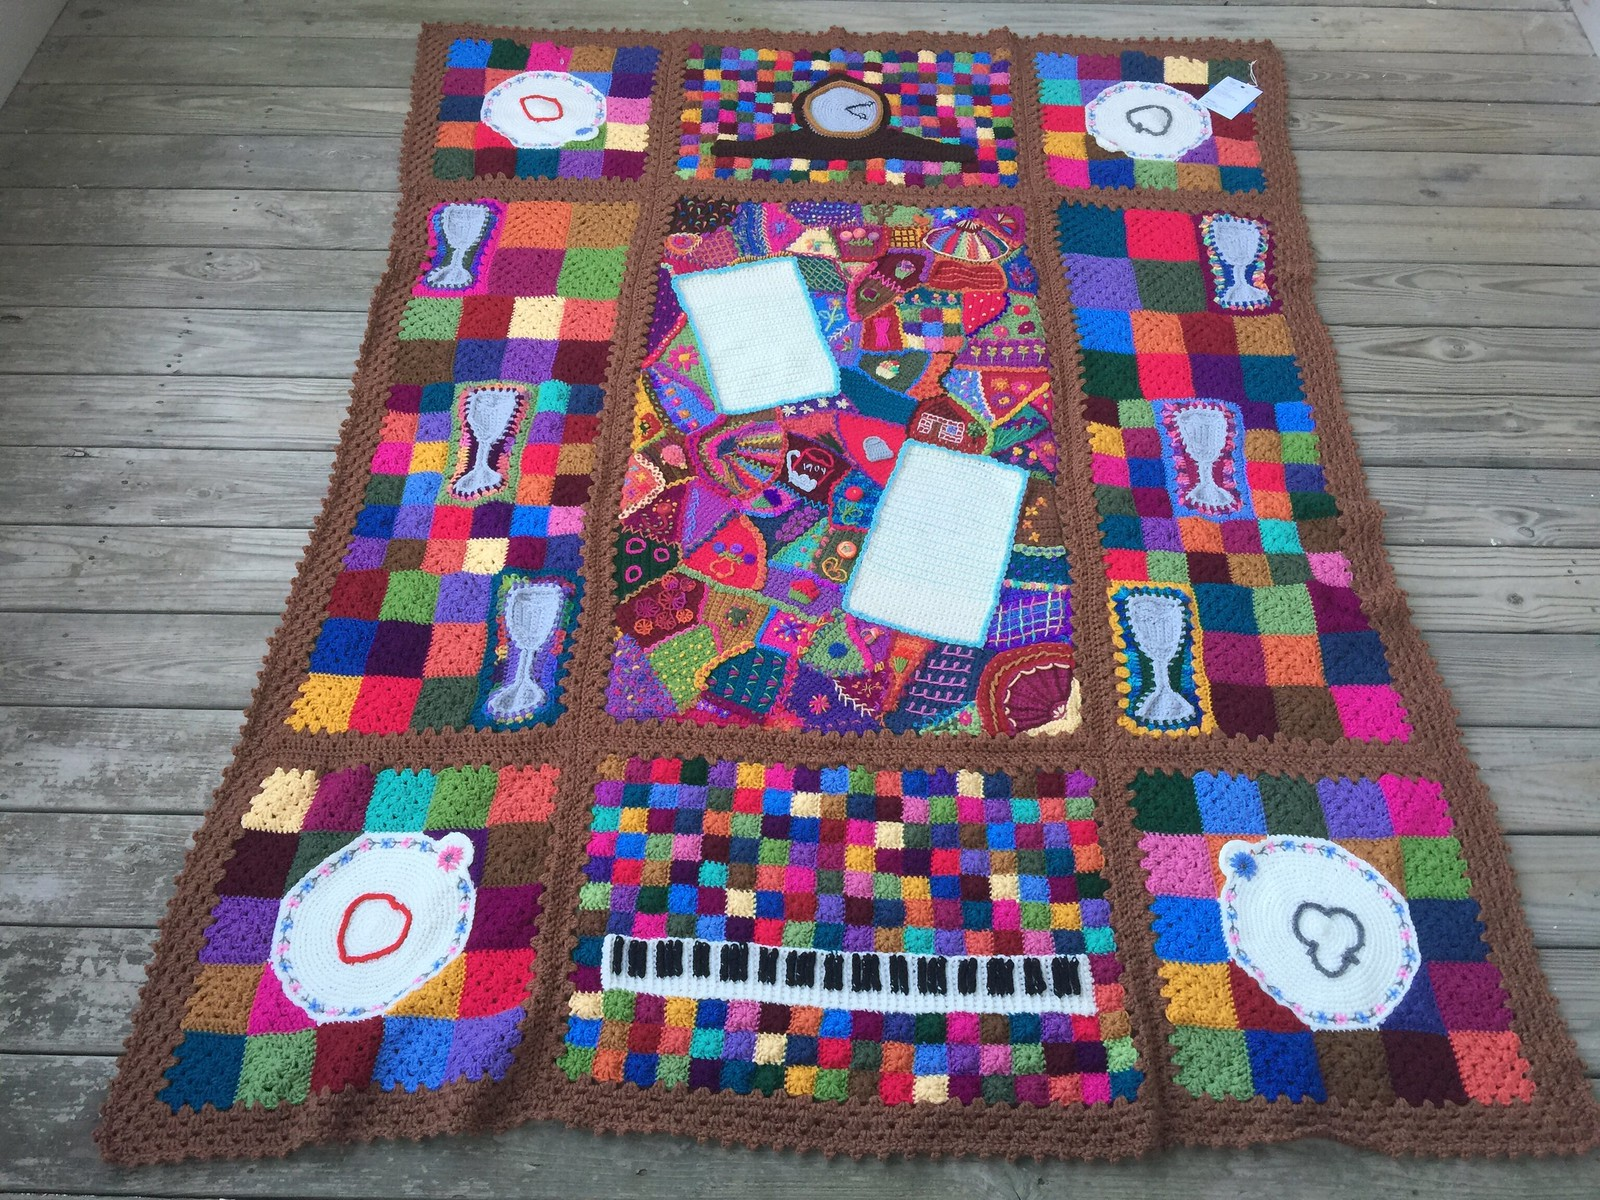 A crochet crazy quilt afghan with embroidery